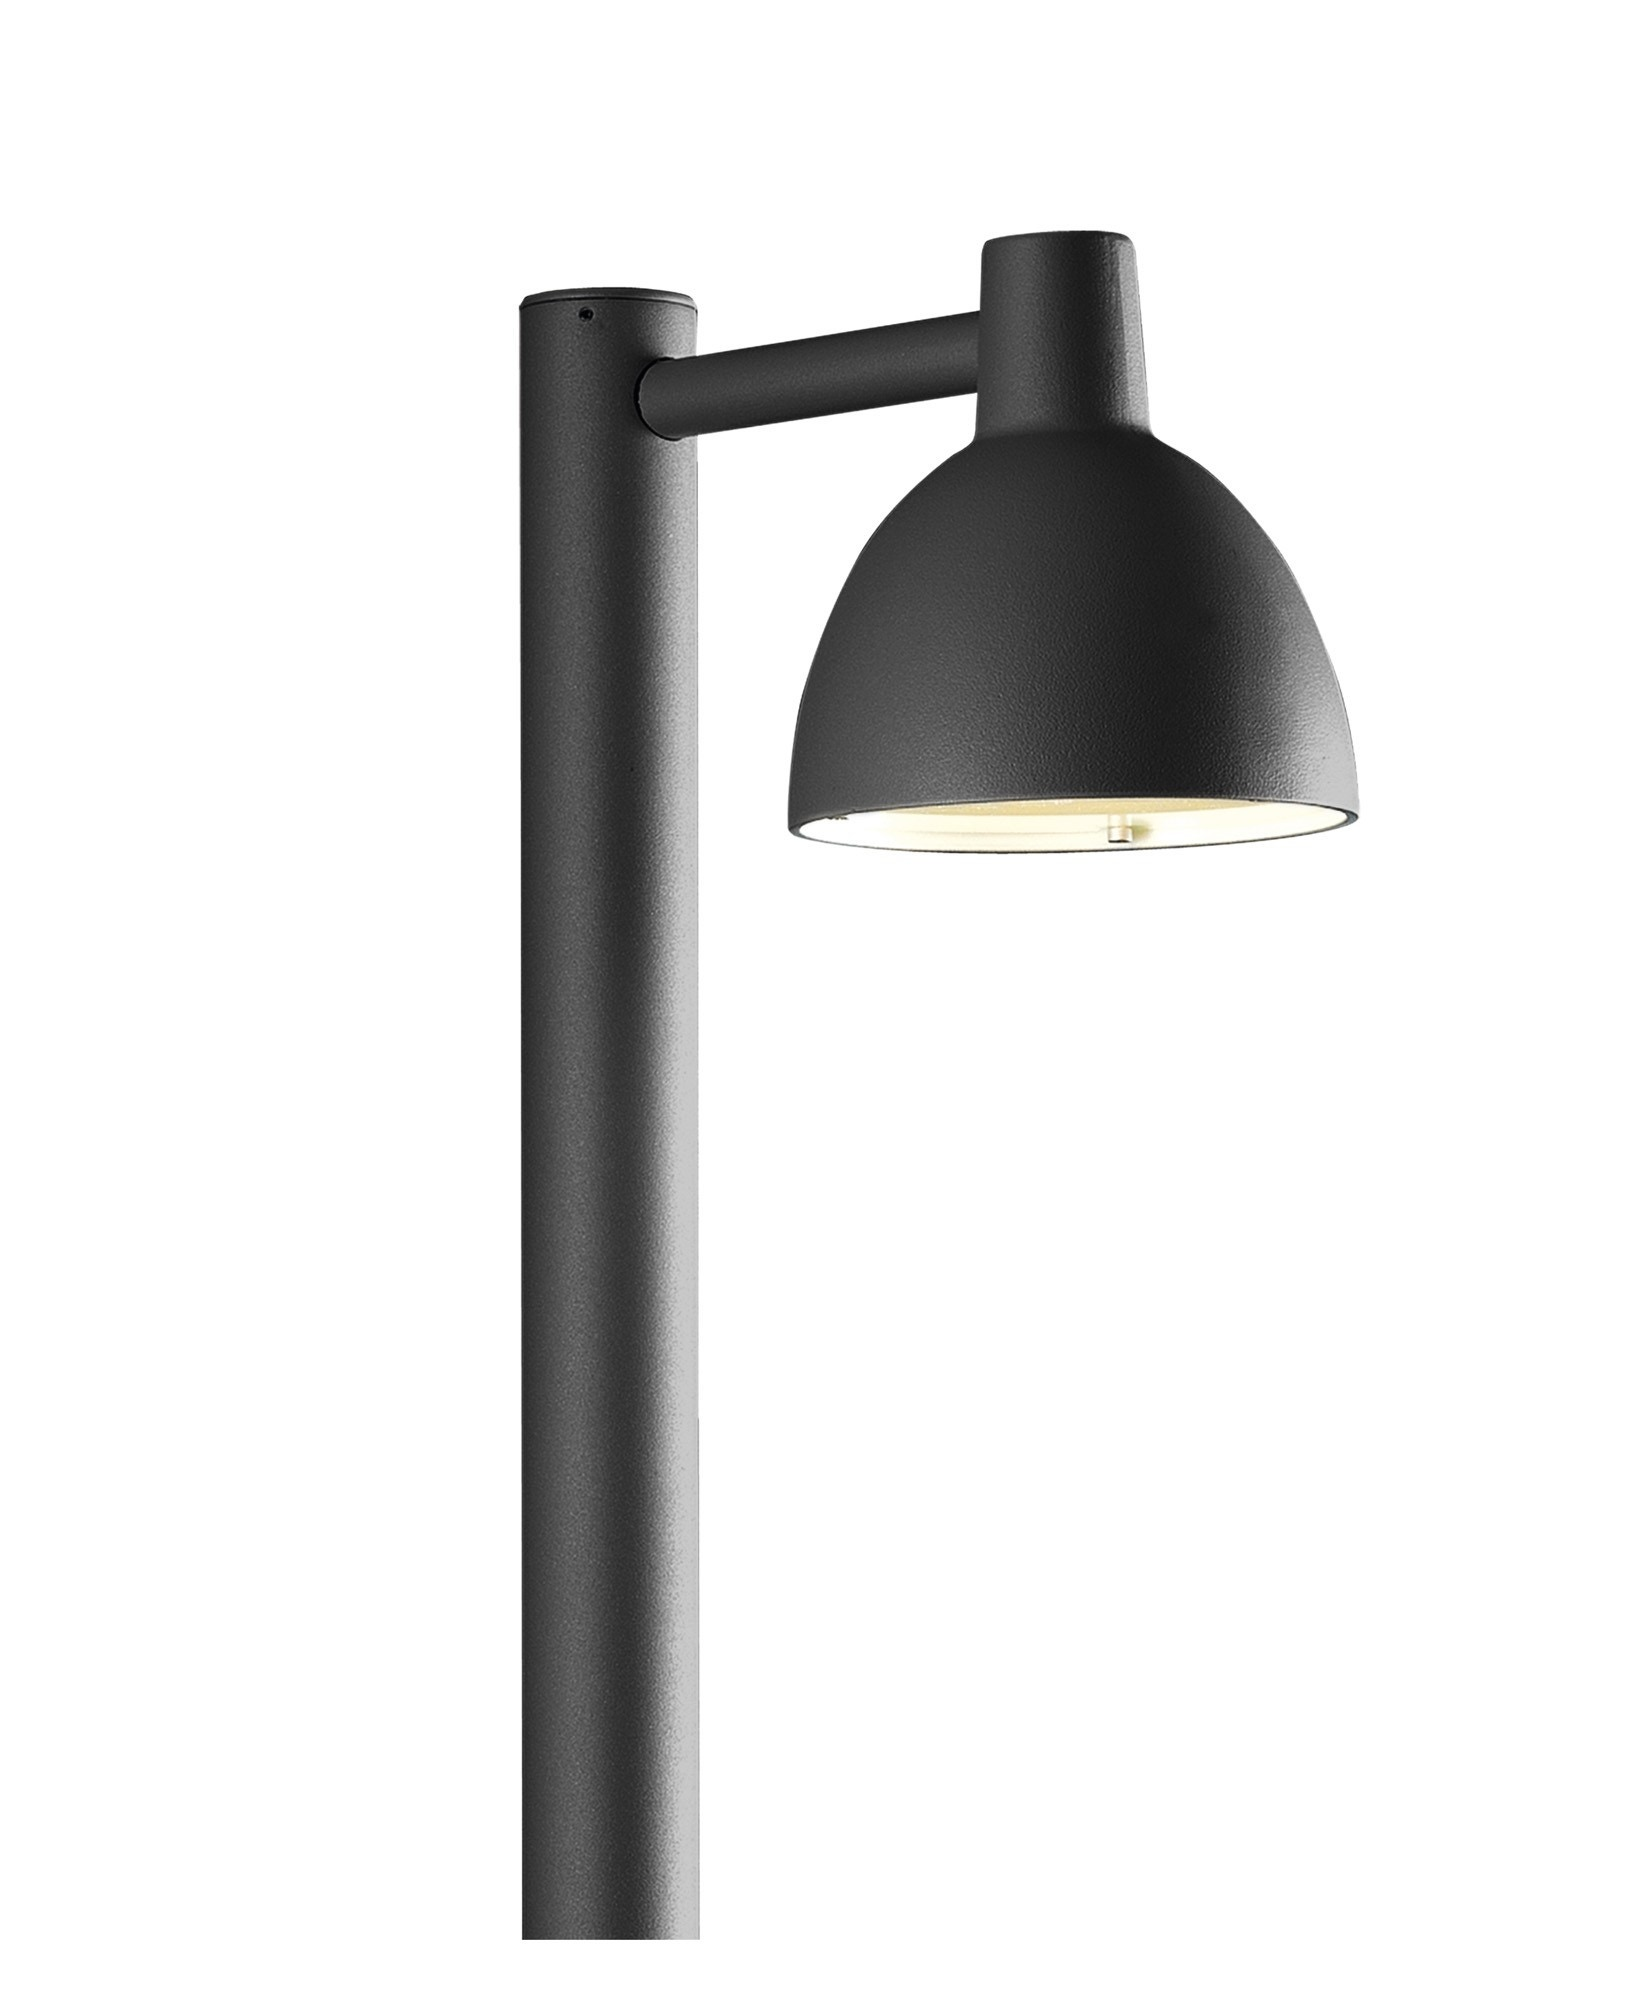 Louis Poulsen Toldbod Bollard Outdoor Floor Lamp